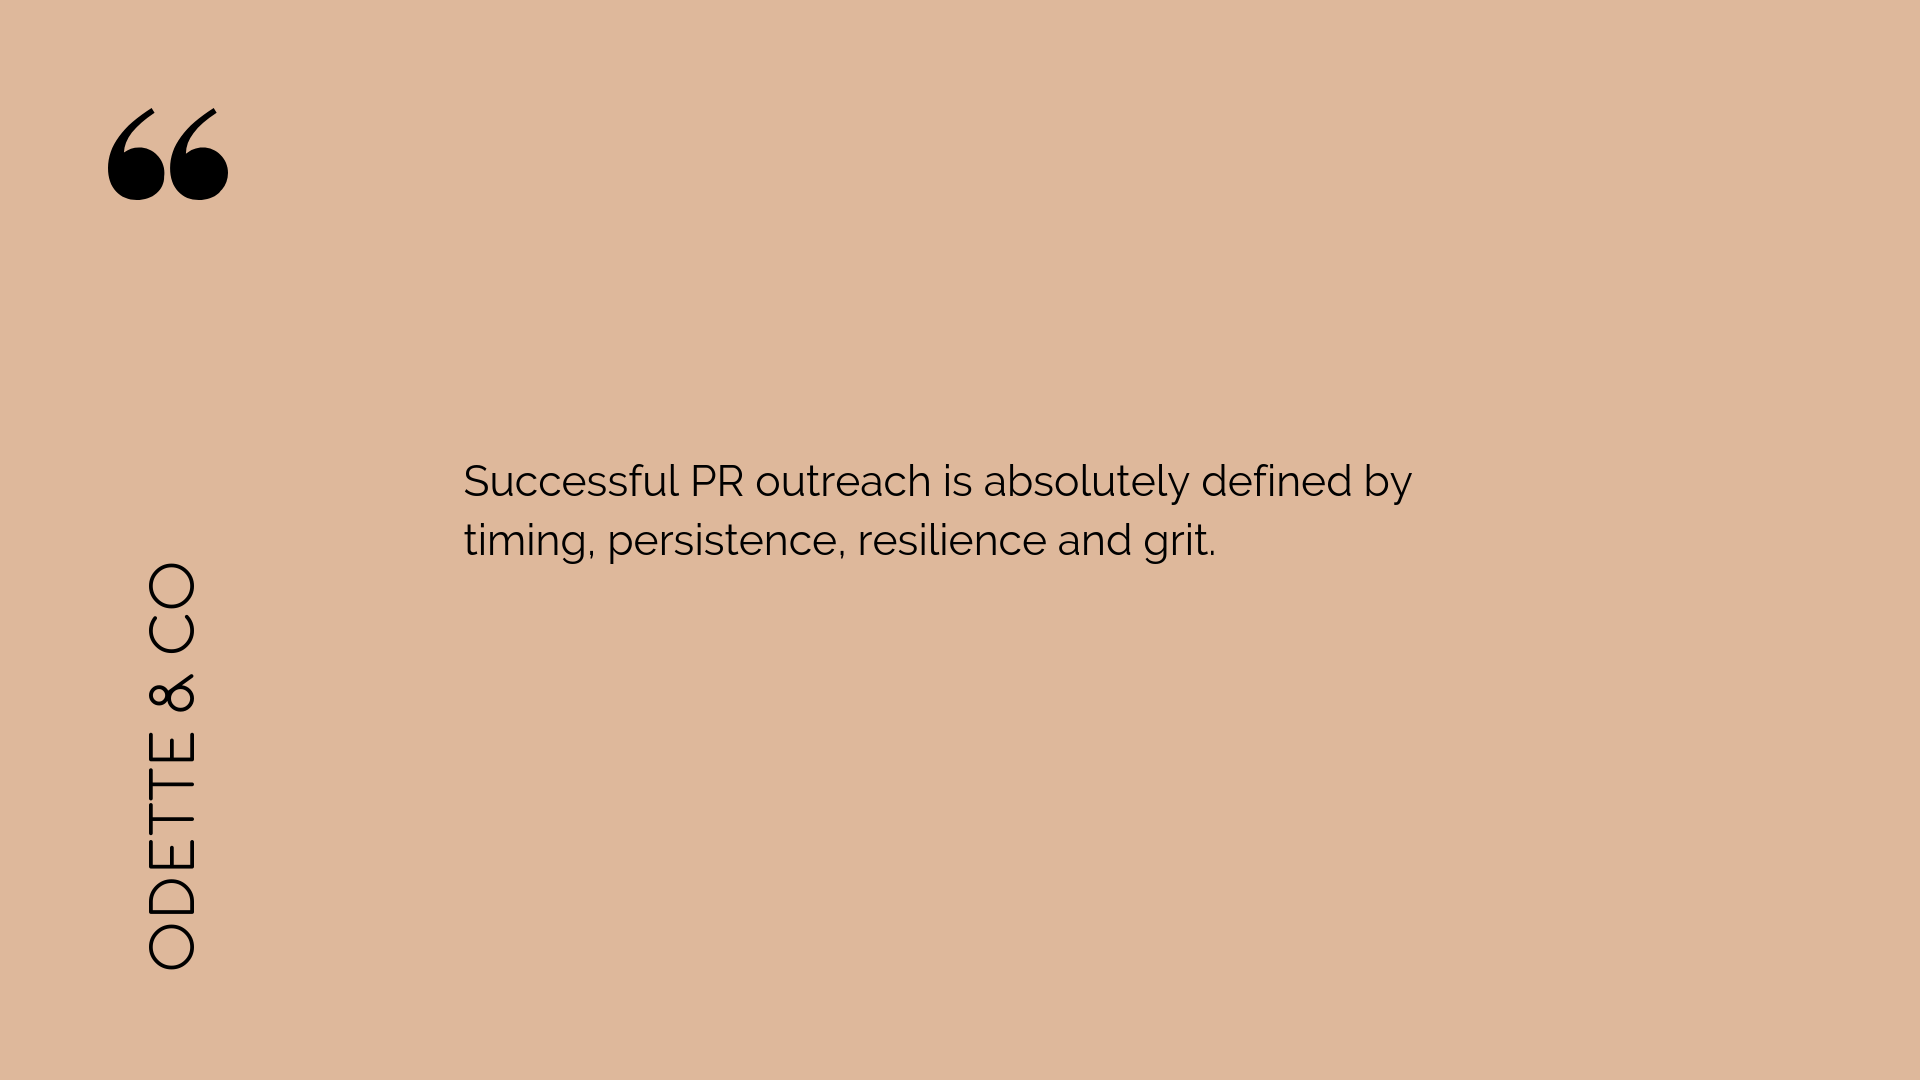 PR is defined by timing, persistence and resilience